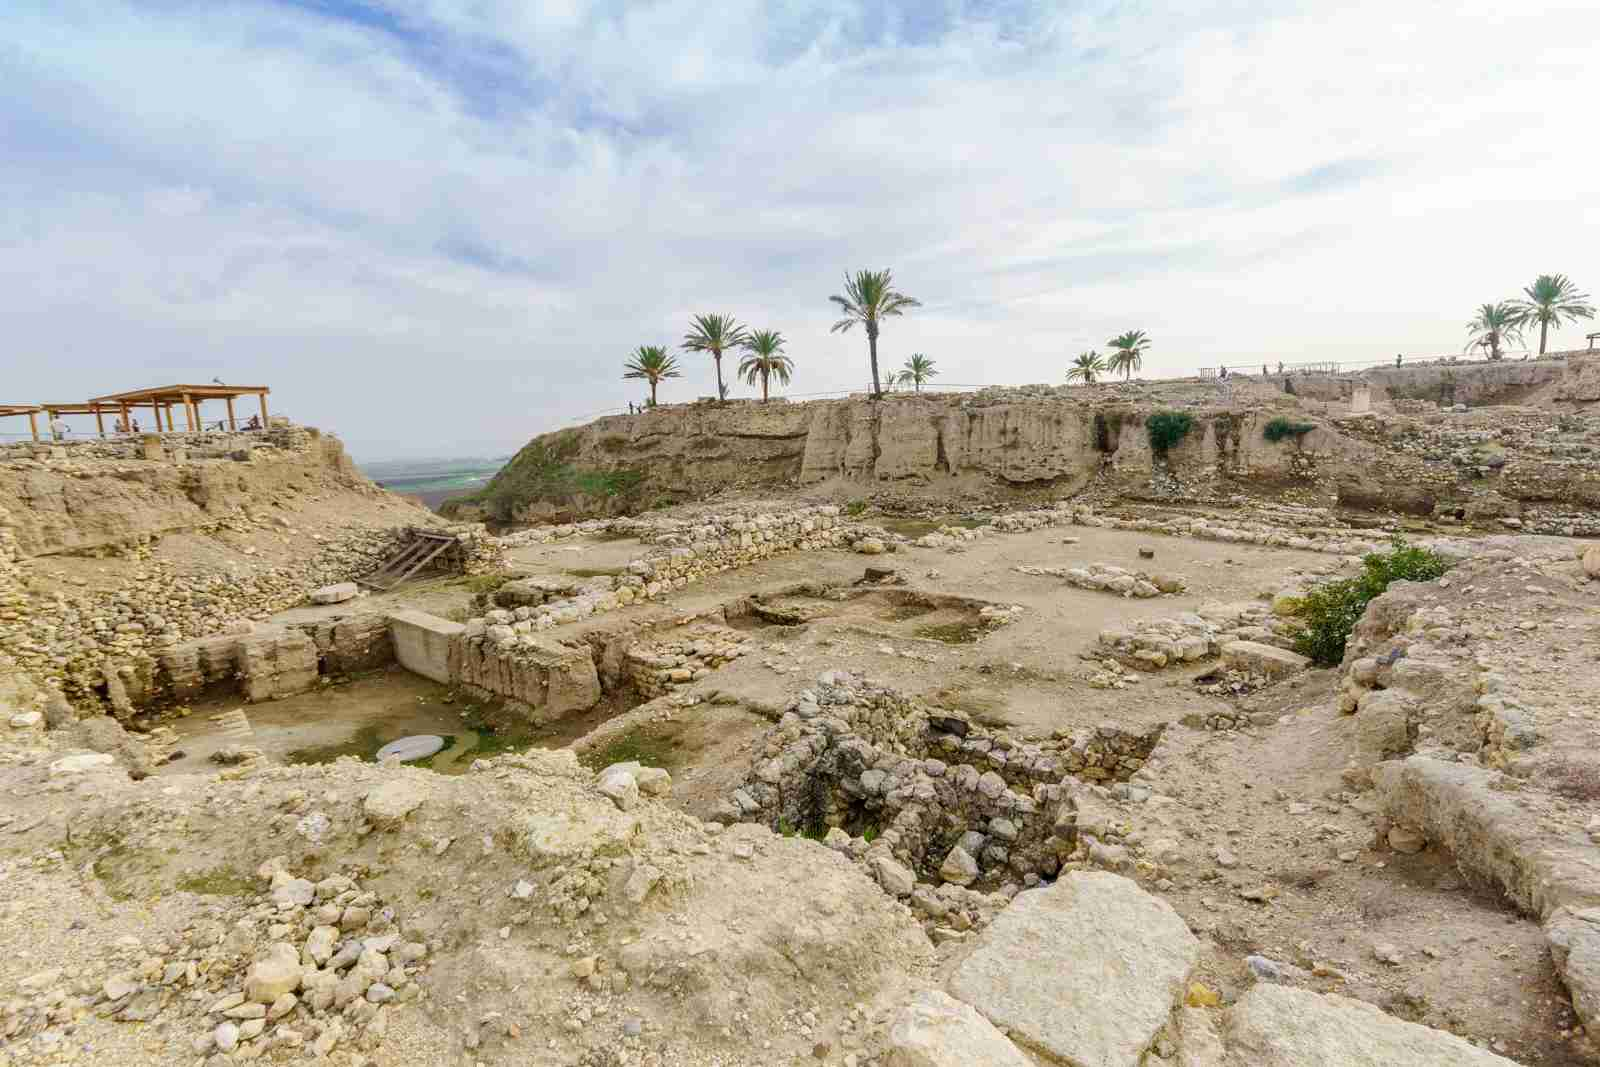 Archaeological remains in Tel Megiddo National Park, Northern Israel. (Photo via Getty Images)